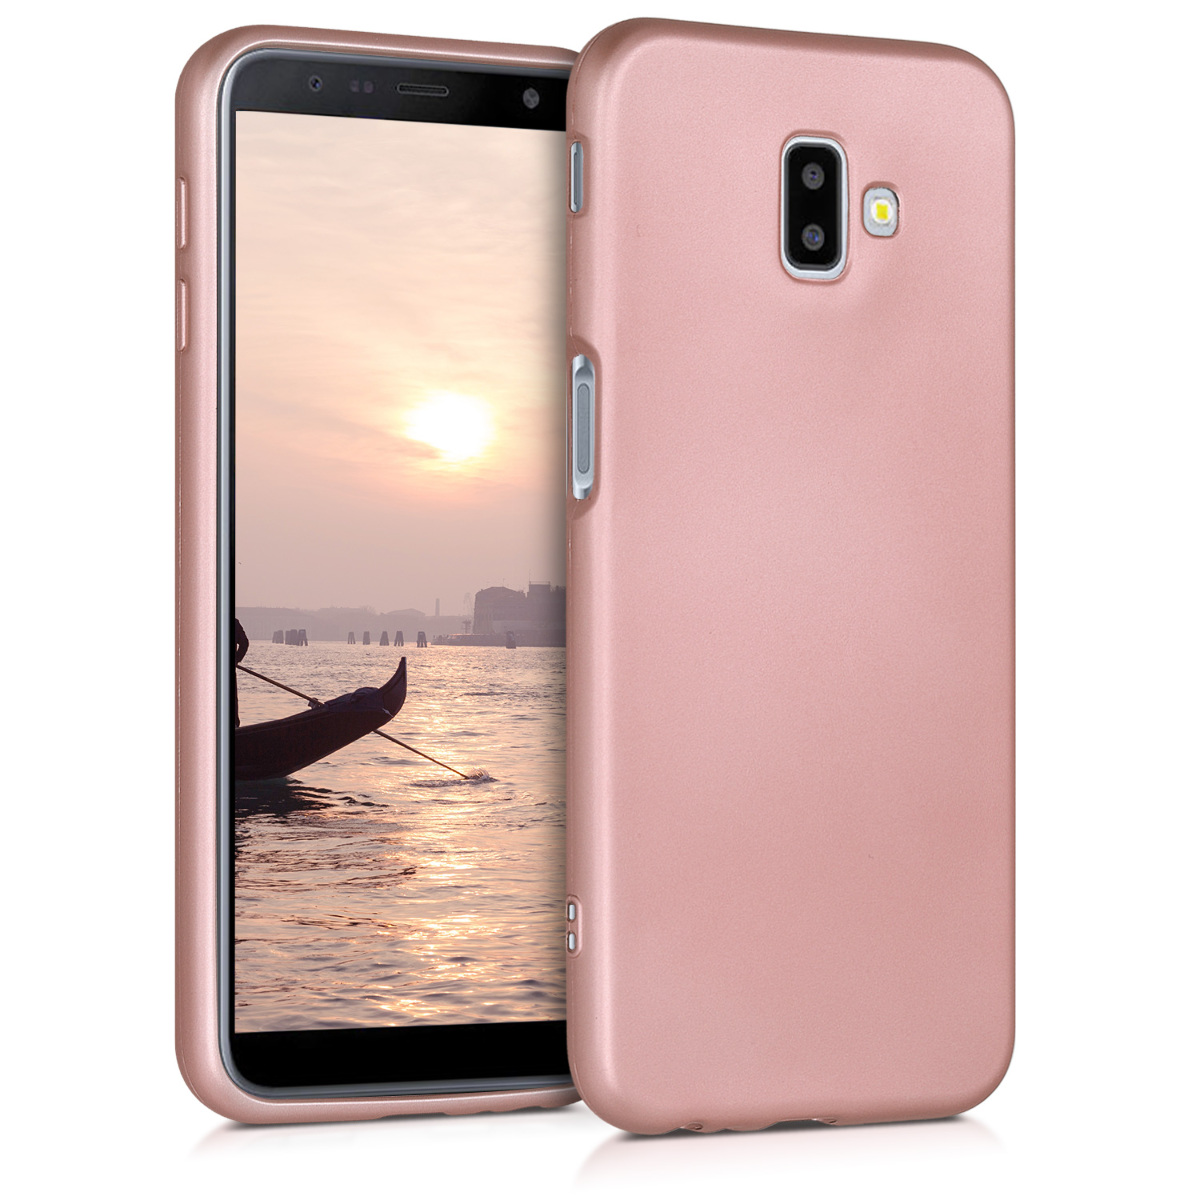 KW Θήκη Σιλικόνης Samsung Galaxy J6+ / J6 Plus DUOS - Soft Flexible Shock Absorbent  - Metallic Rose Gold (46838.31)